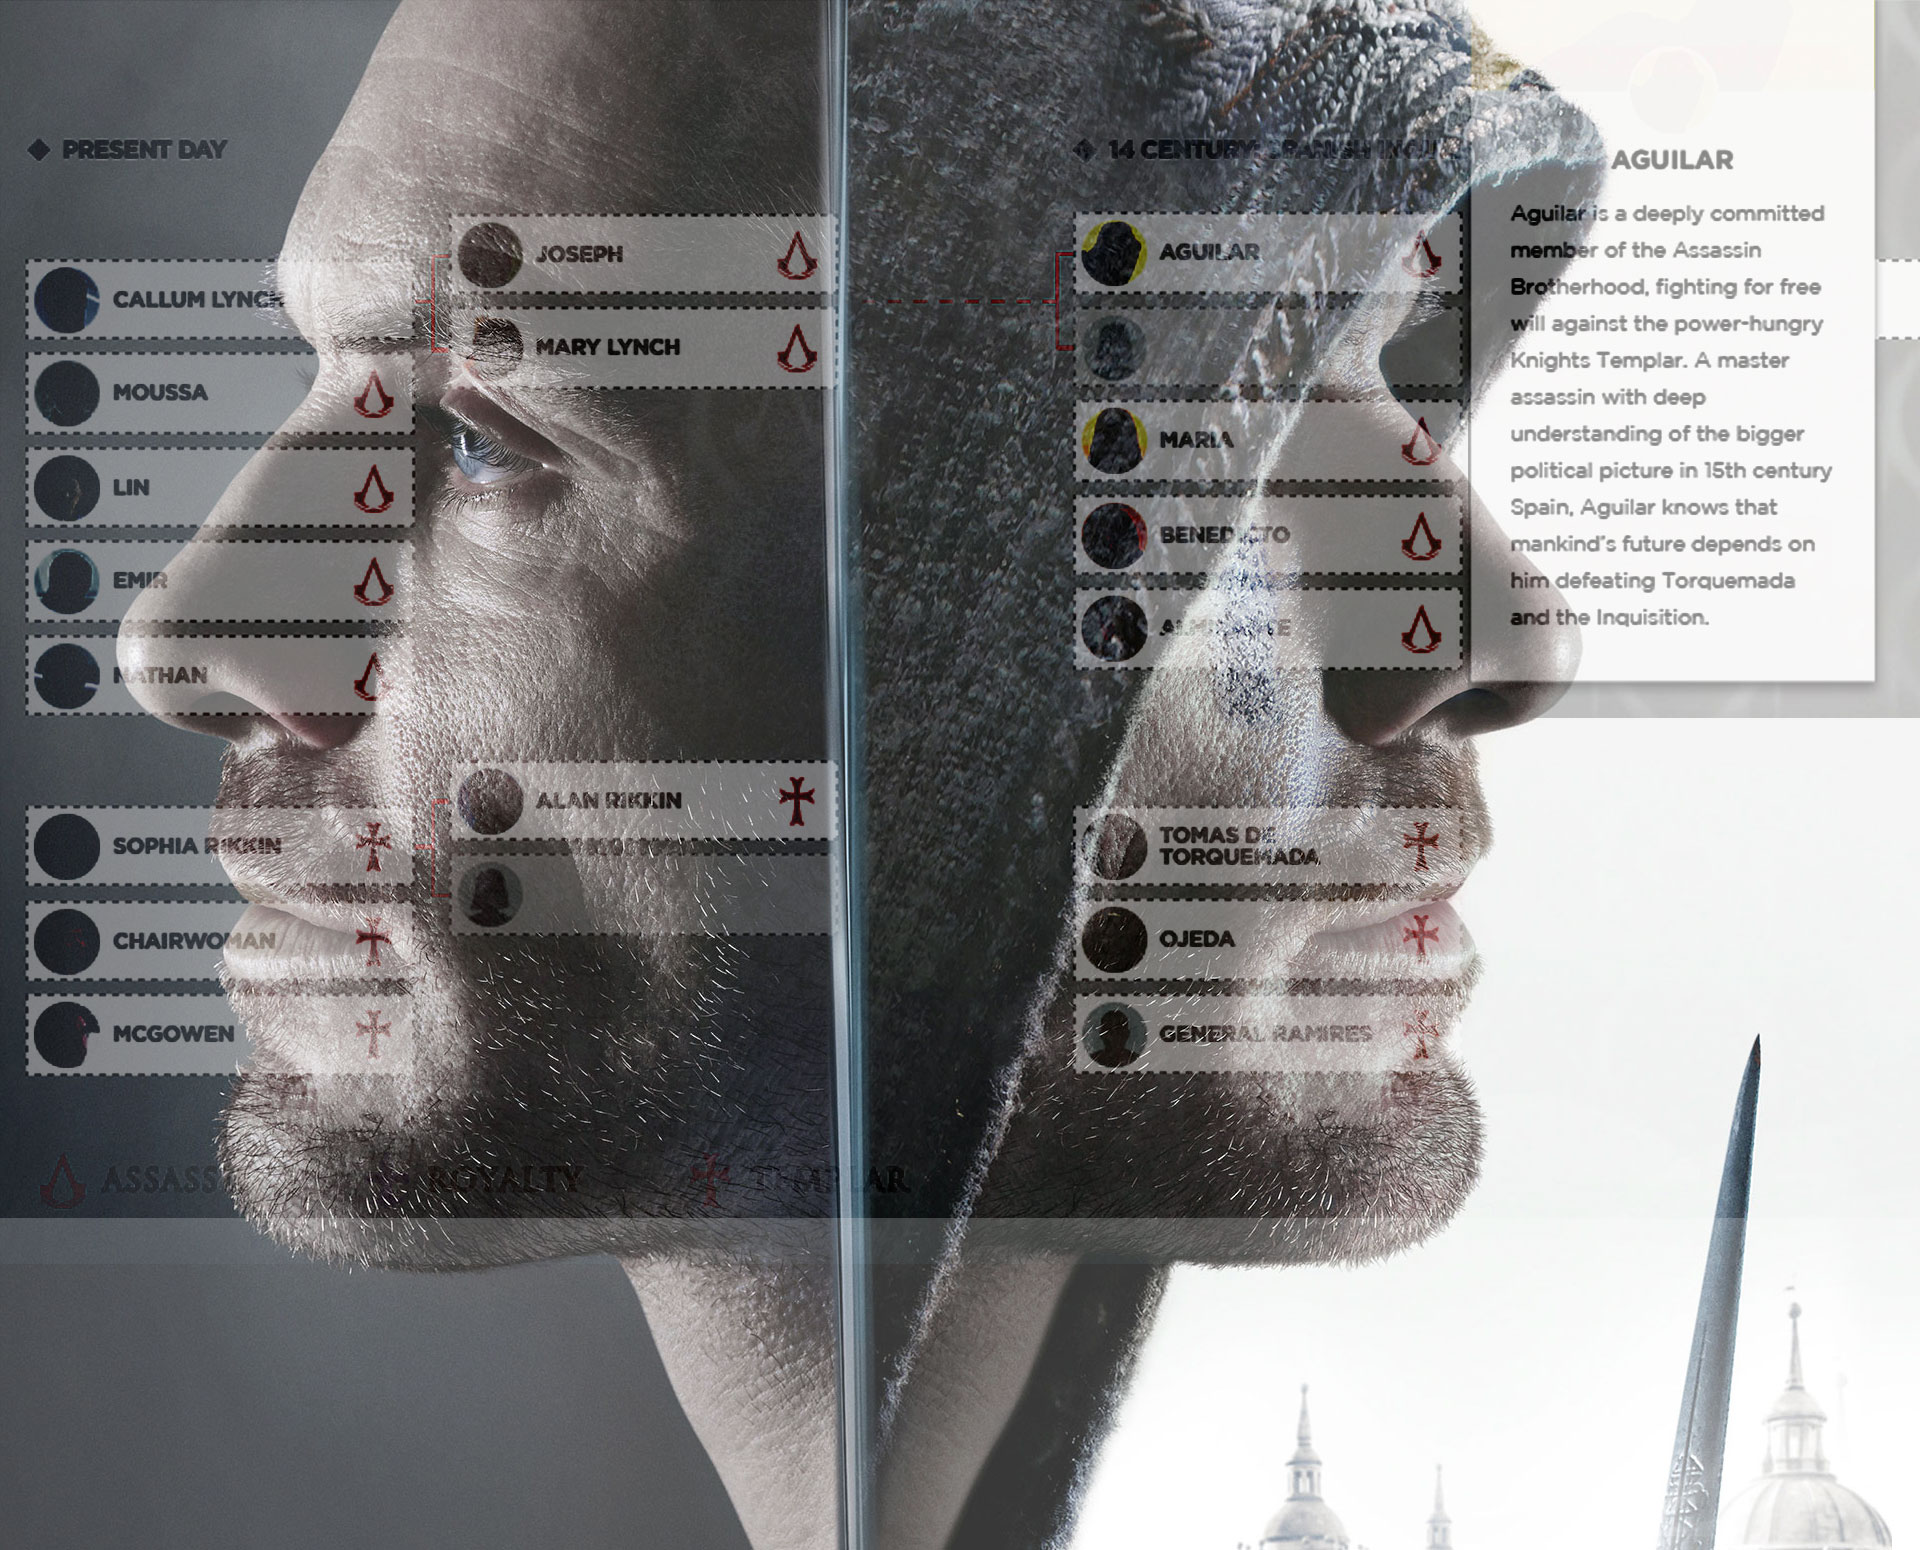 Michael Fassbender Assassins Creed Family Tree